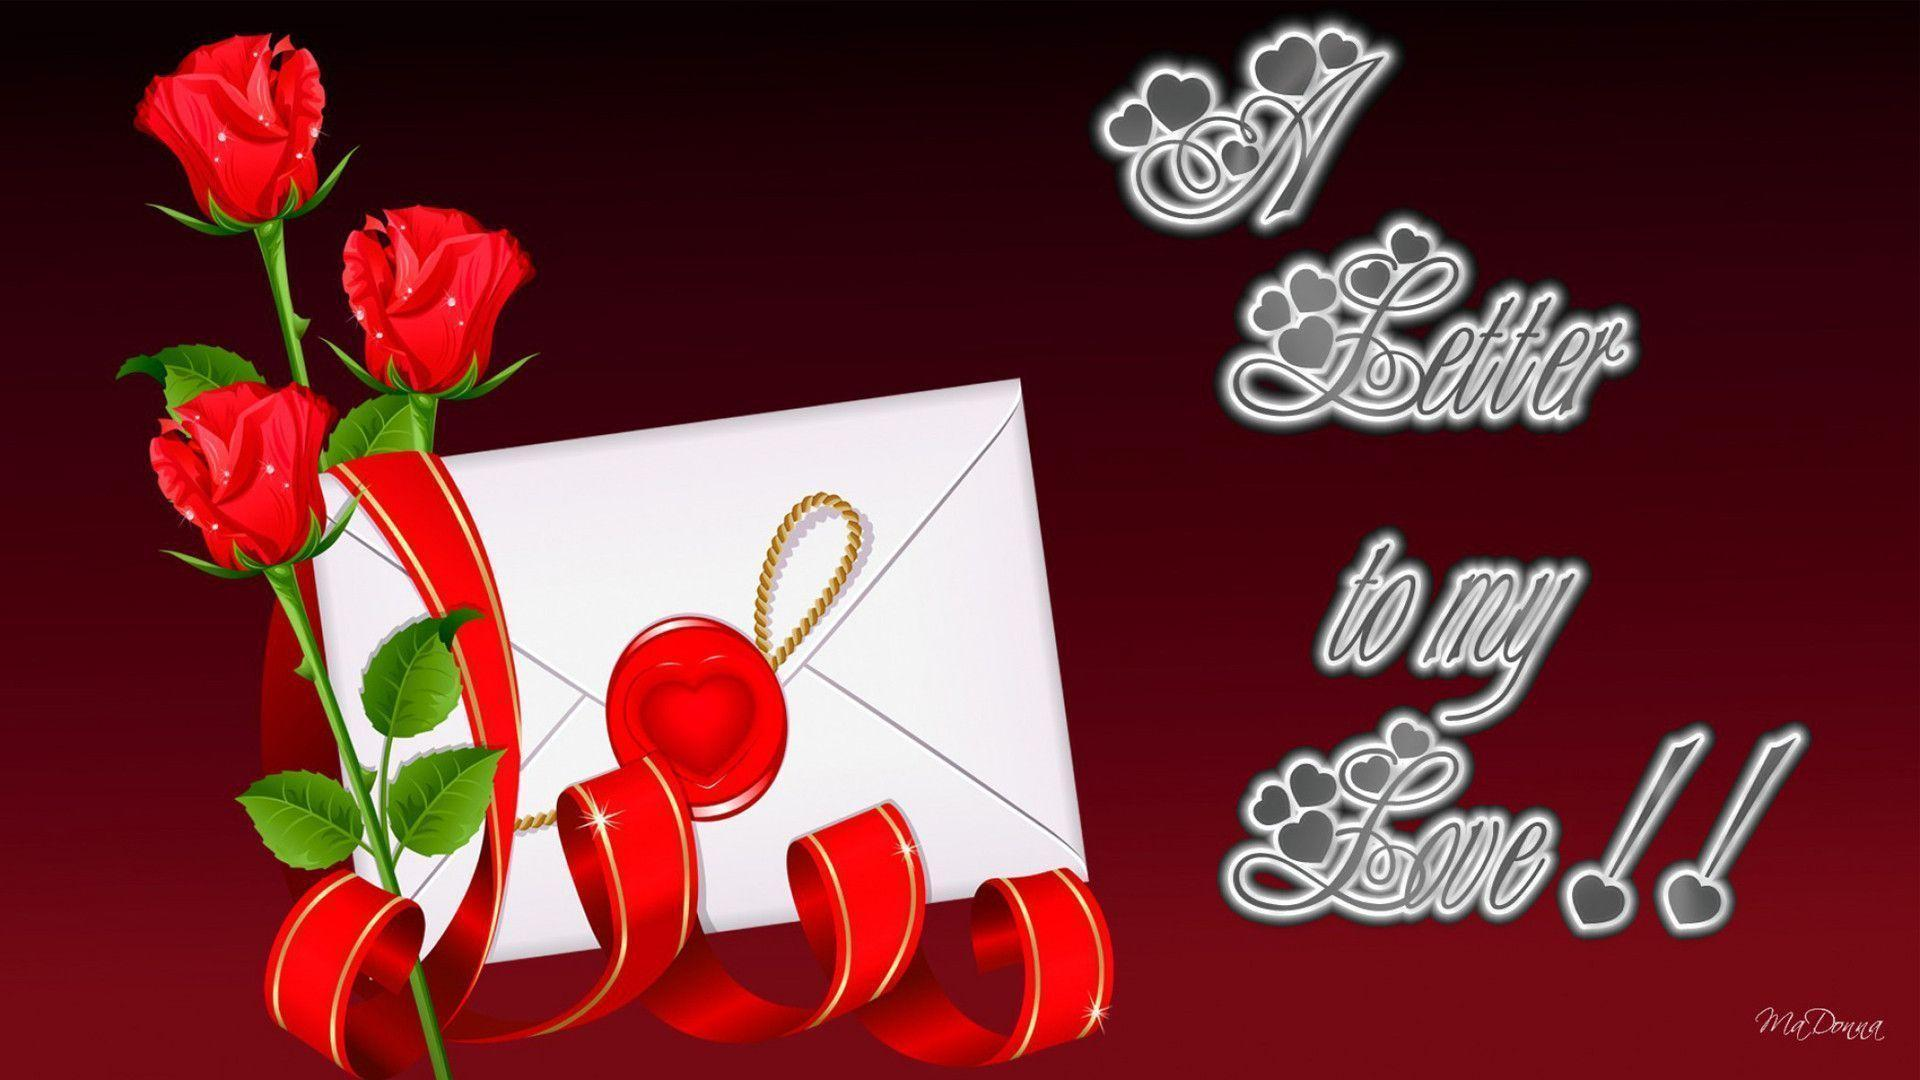 Love Letter Wallpapers - Wallpaper Cave